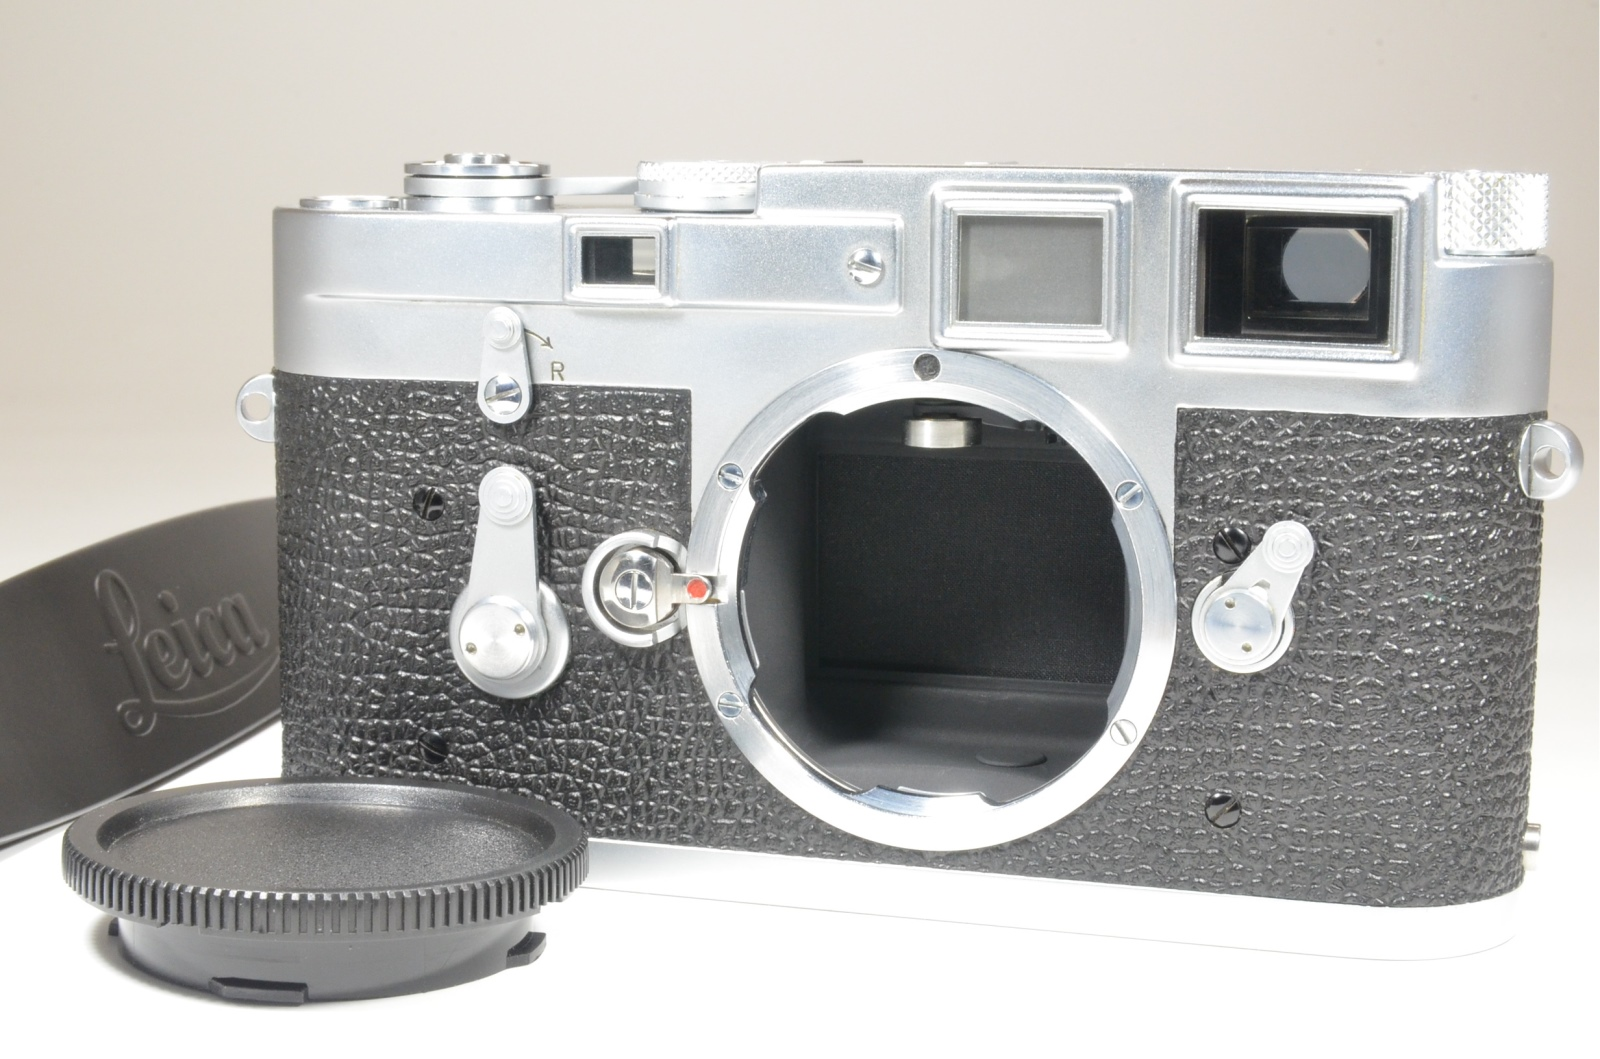 leica m3 single stroke s/n 972741 year 1959 with strap